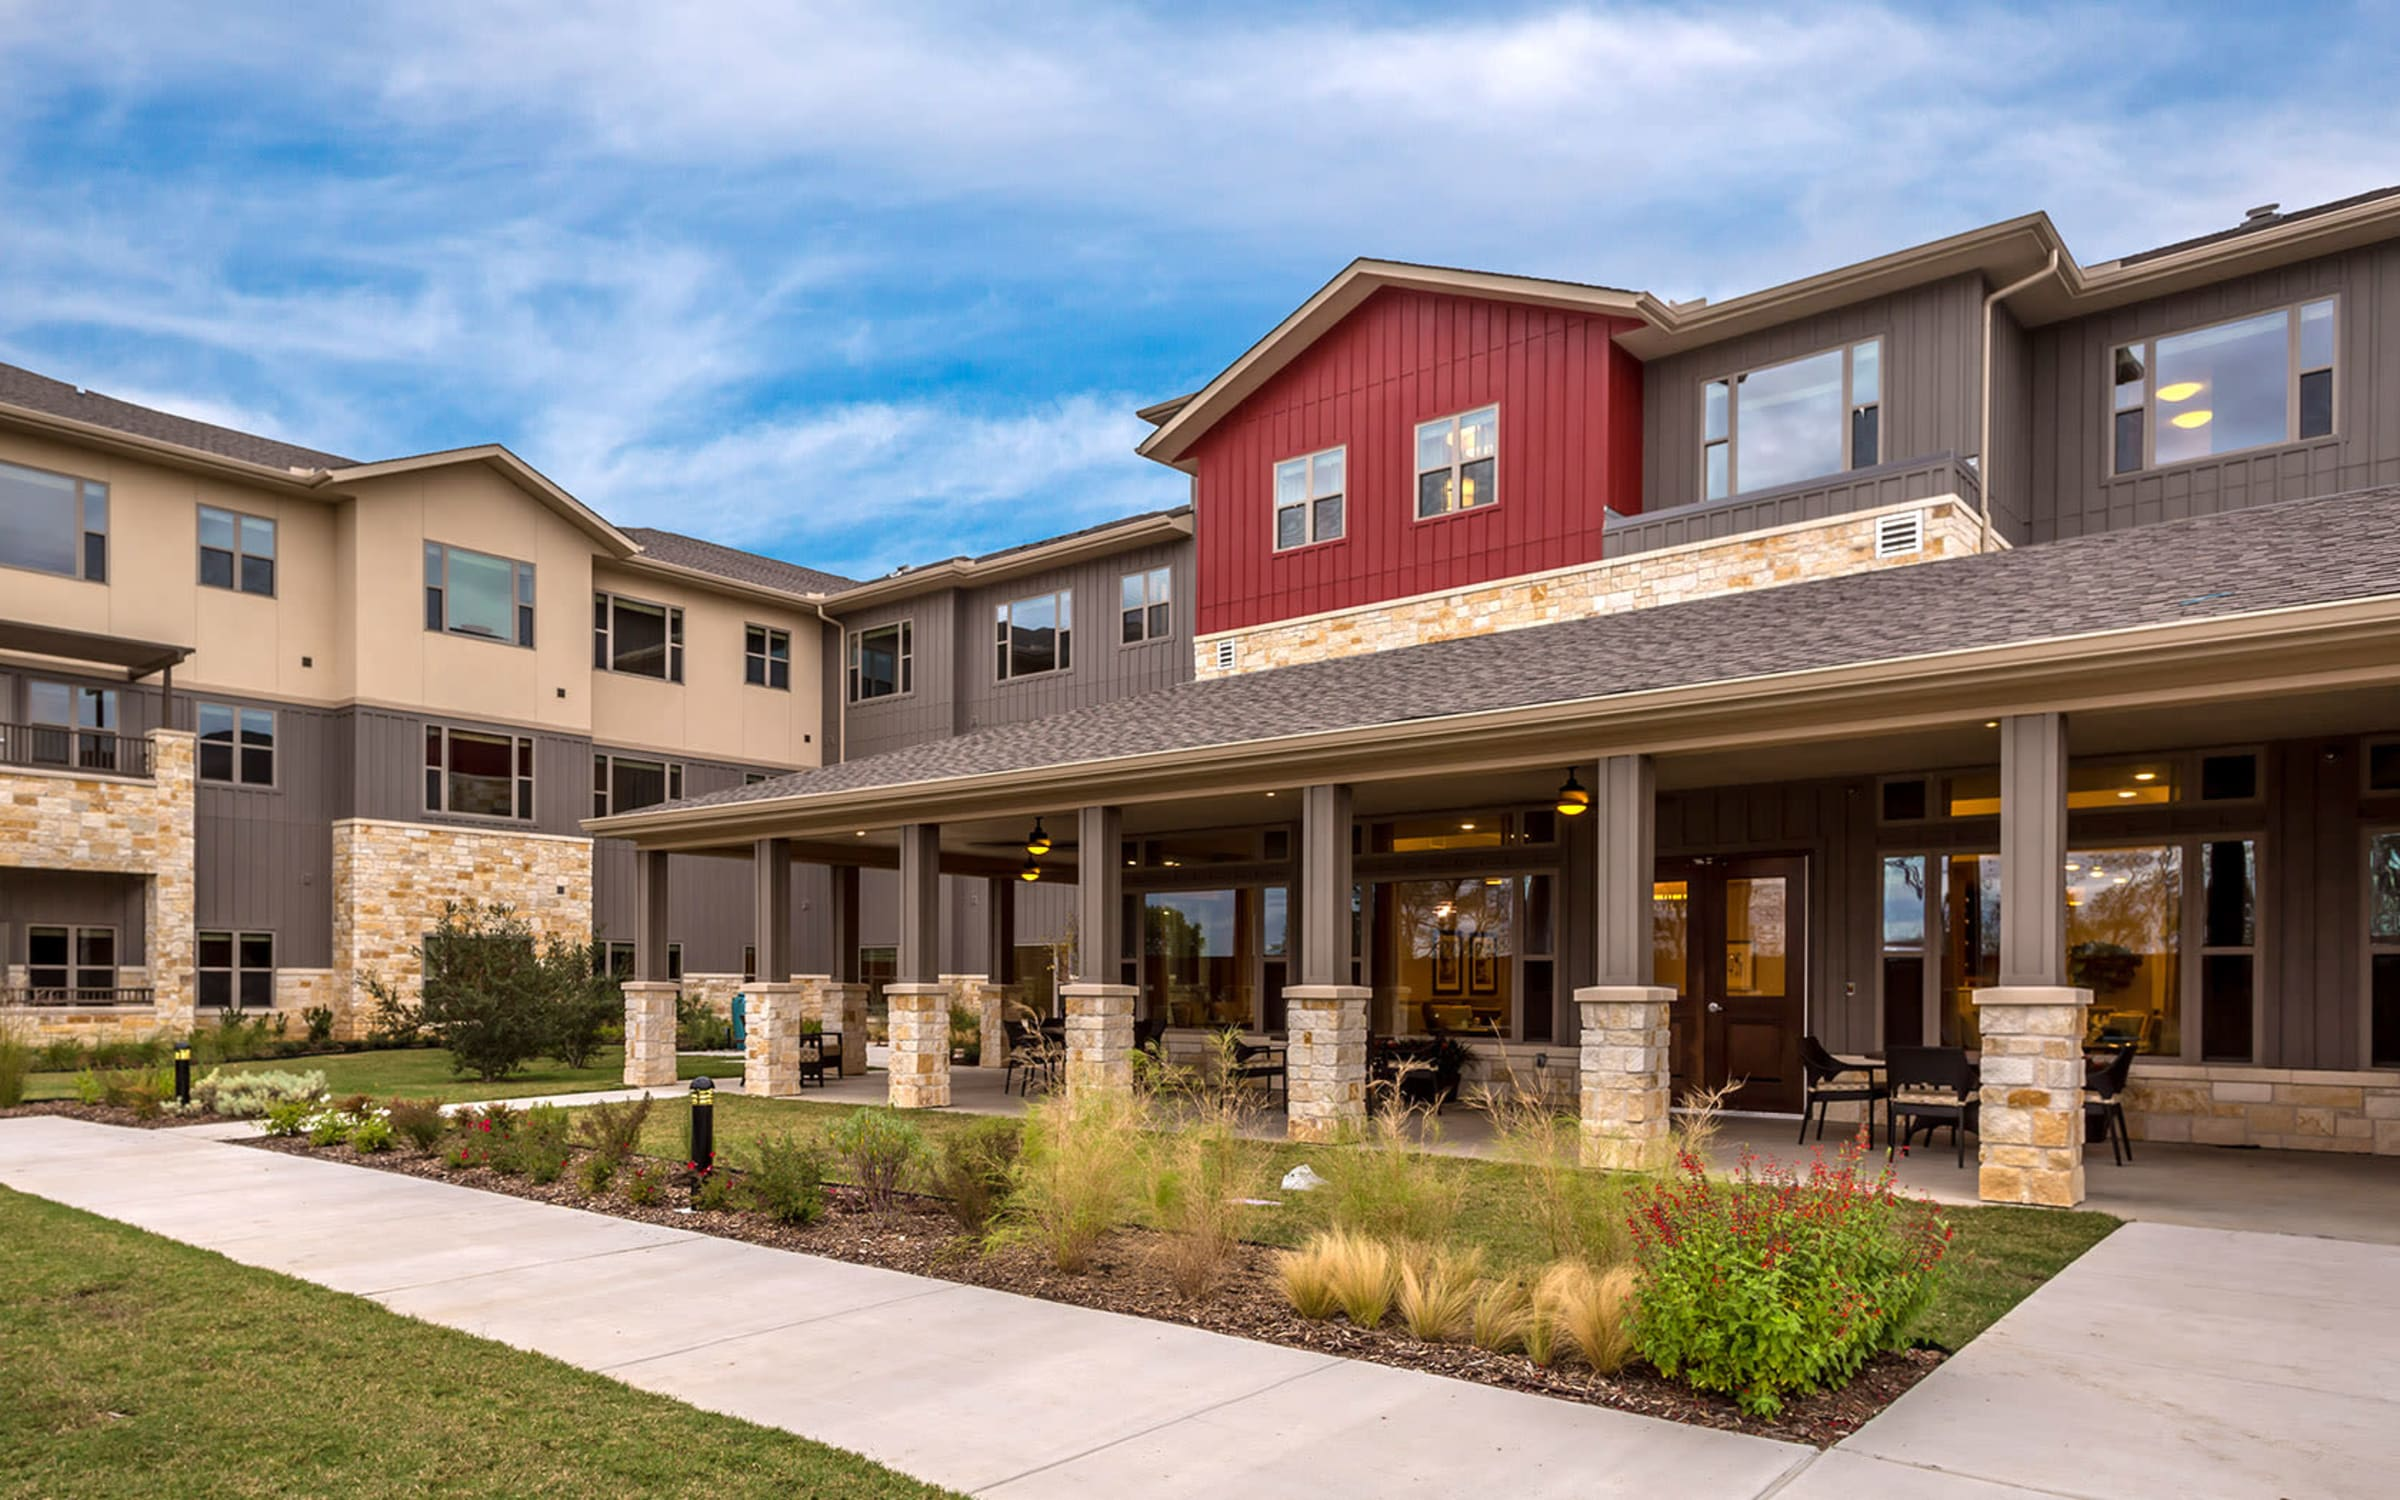 Services and amenities at Anthology of Plano in Plano, Texas